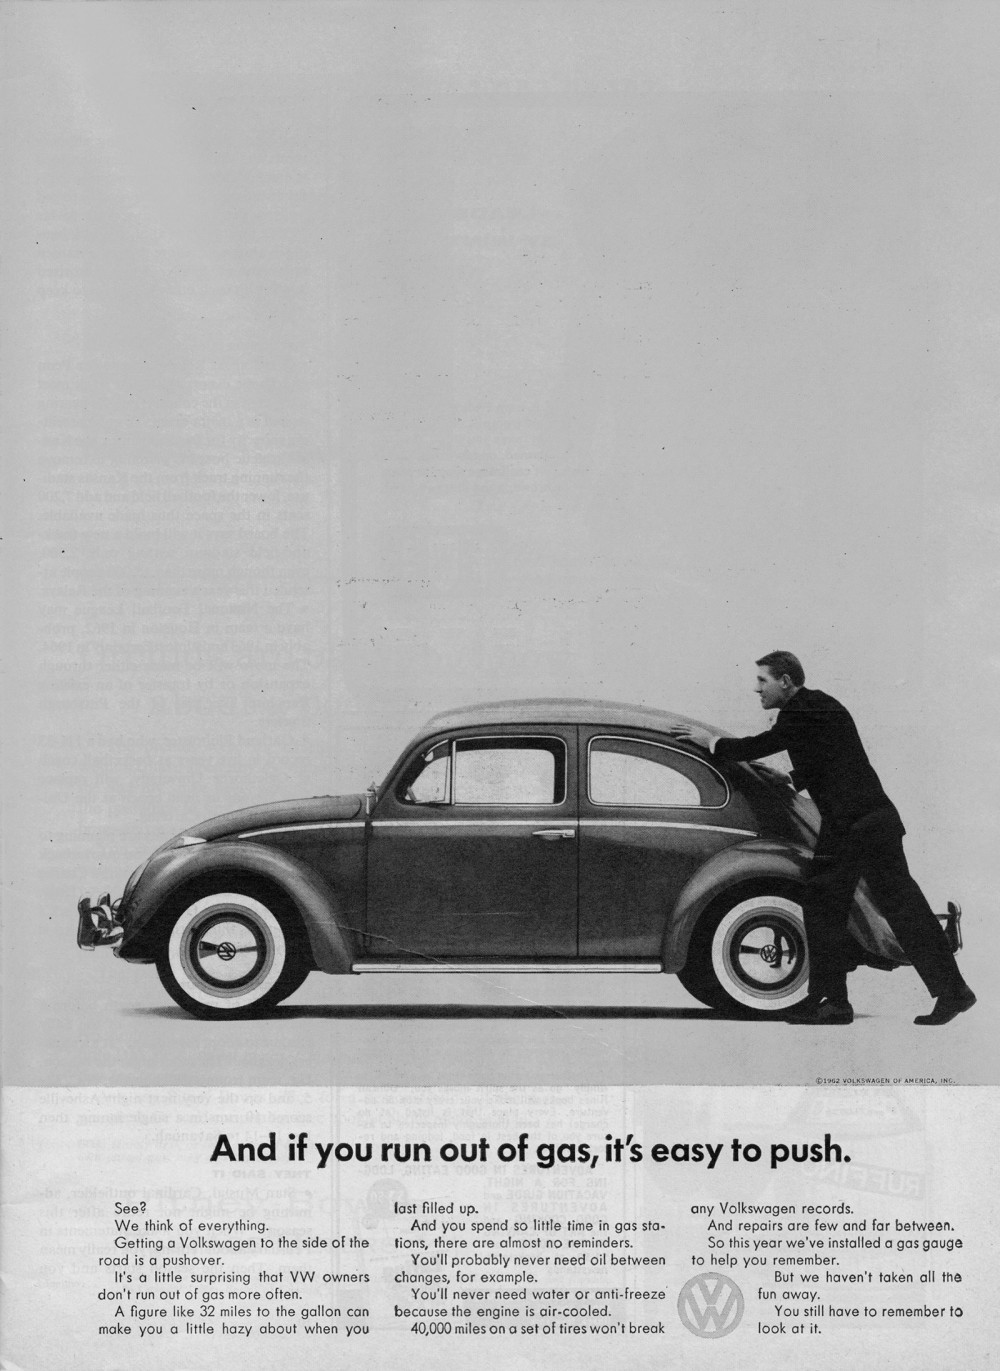 The Volkswagen Beetle became an icon of 1960s culture and a paradigm of a new advertising age. This tongue-in-cheek advertisement attracted laughs and attention from the public and business world. http://www.videosurrey.com/wp-content/uploads/2013/03/beetle-coccinelle-volkswagen-vw-publicite-vintage-03.jpg.